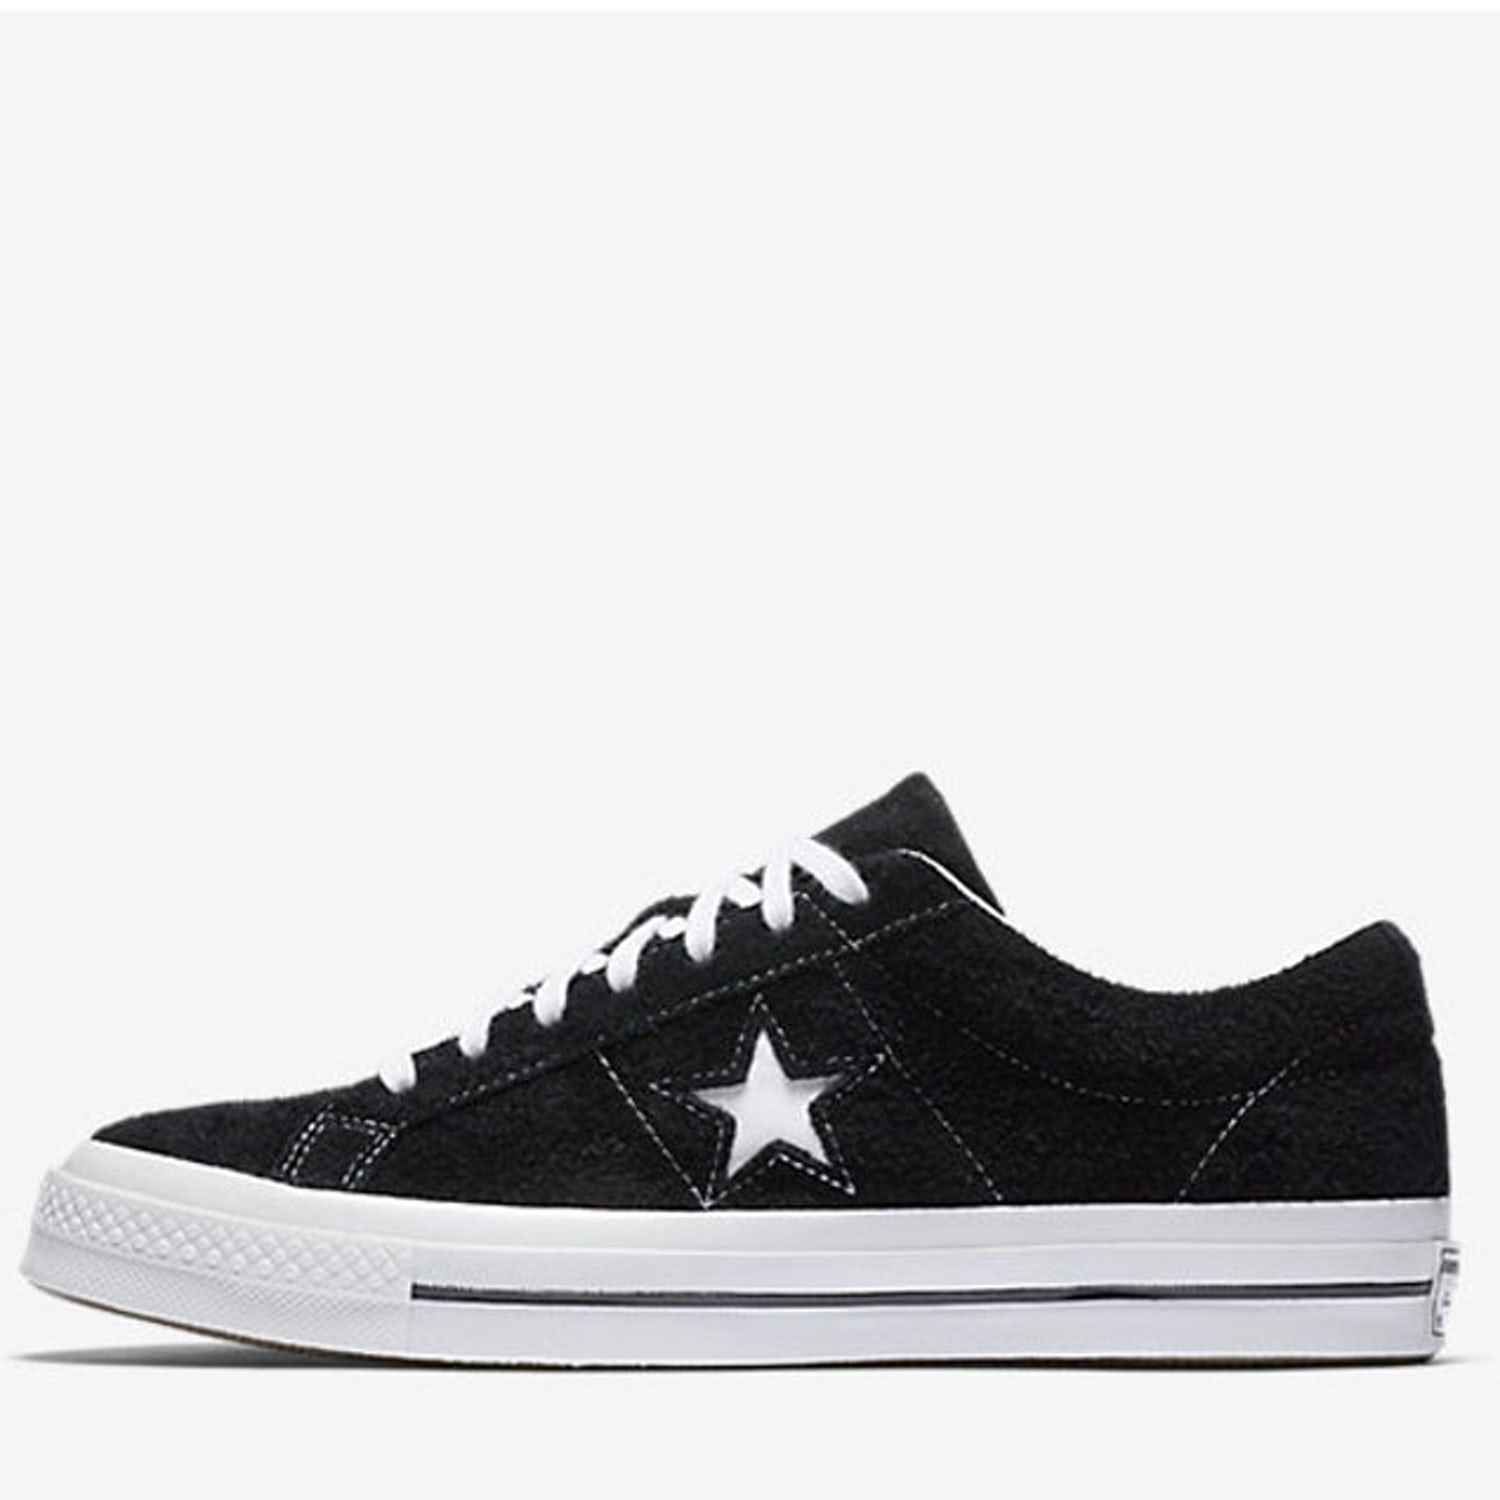 14. Converse One Star 0